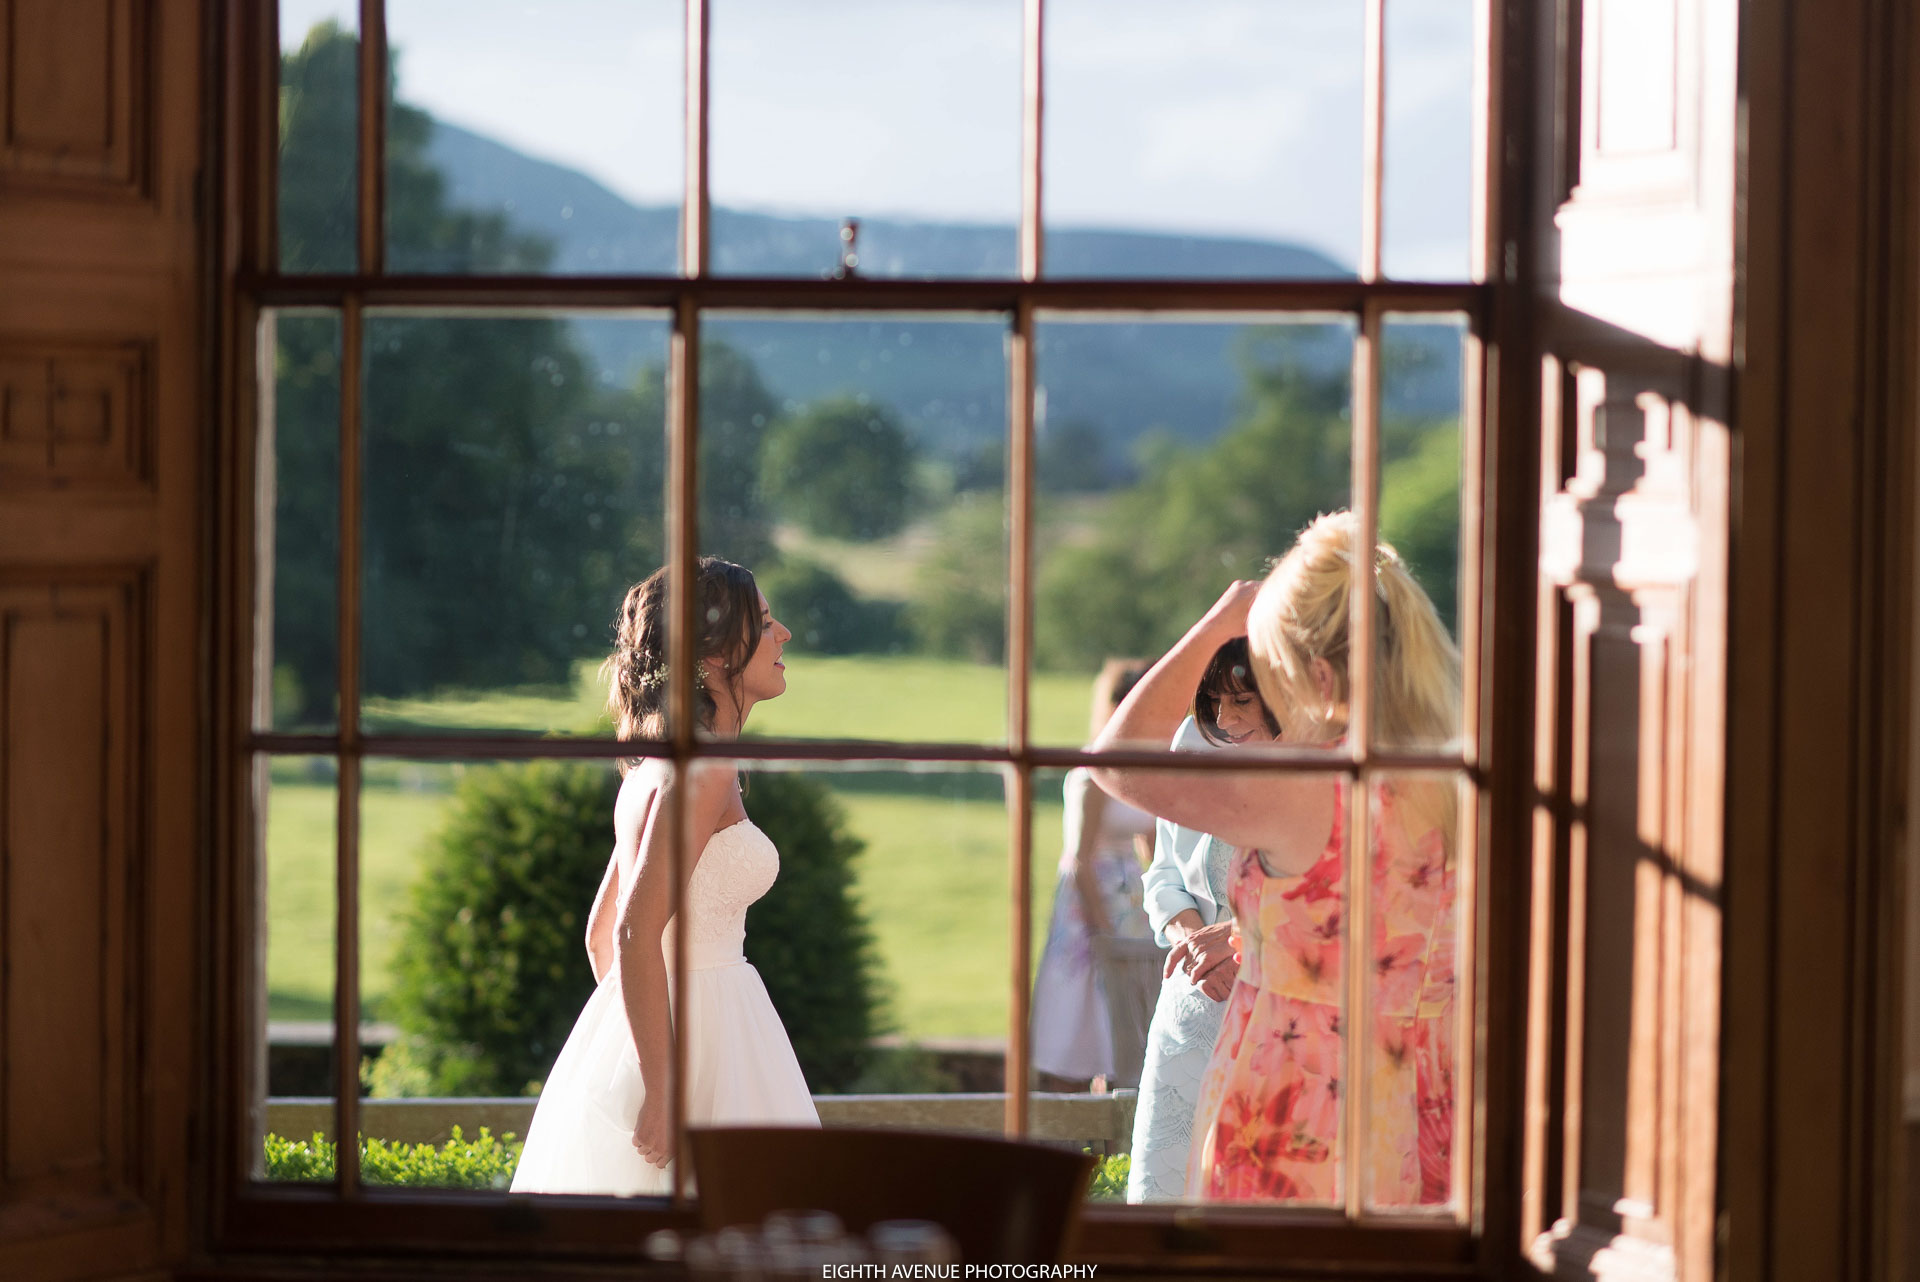 View through window to bride